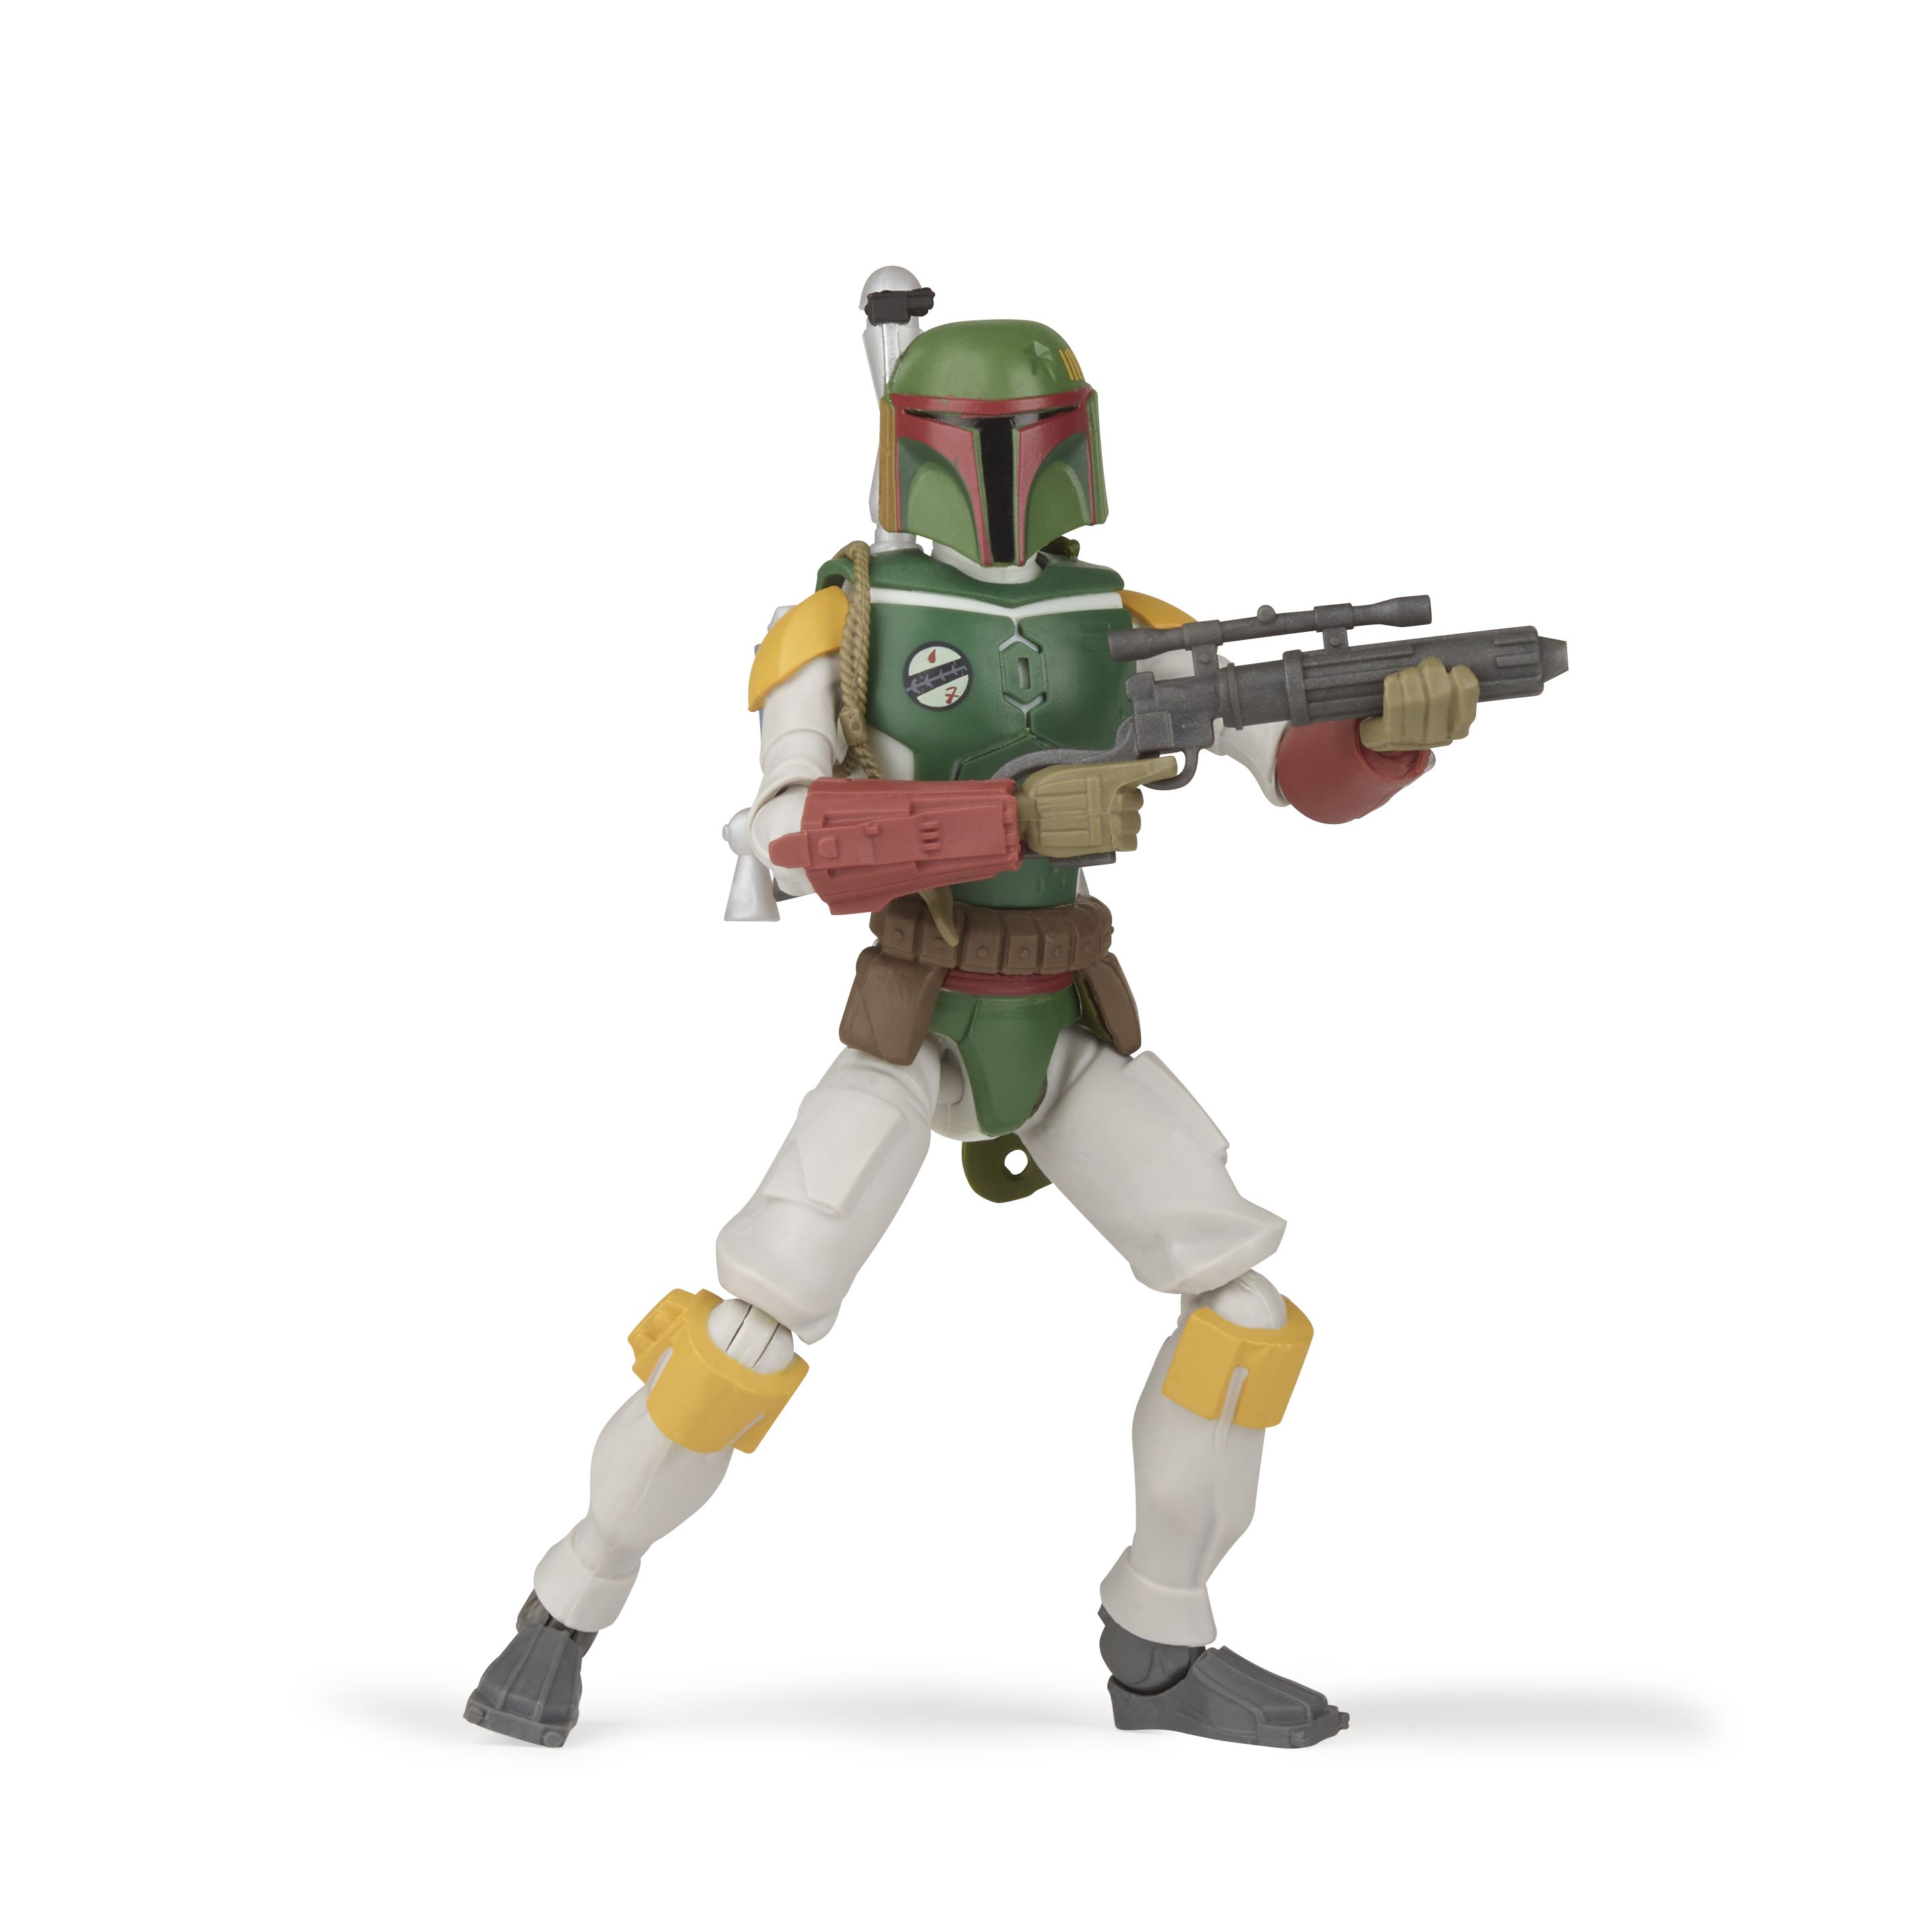 Galaxy of Adventures Boba Fett